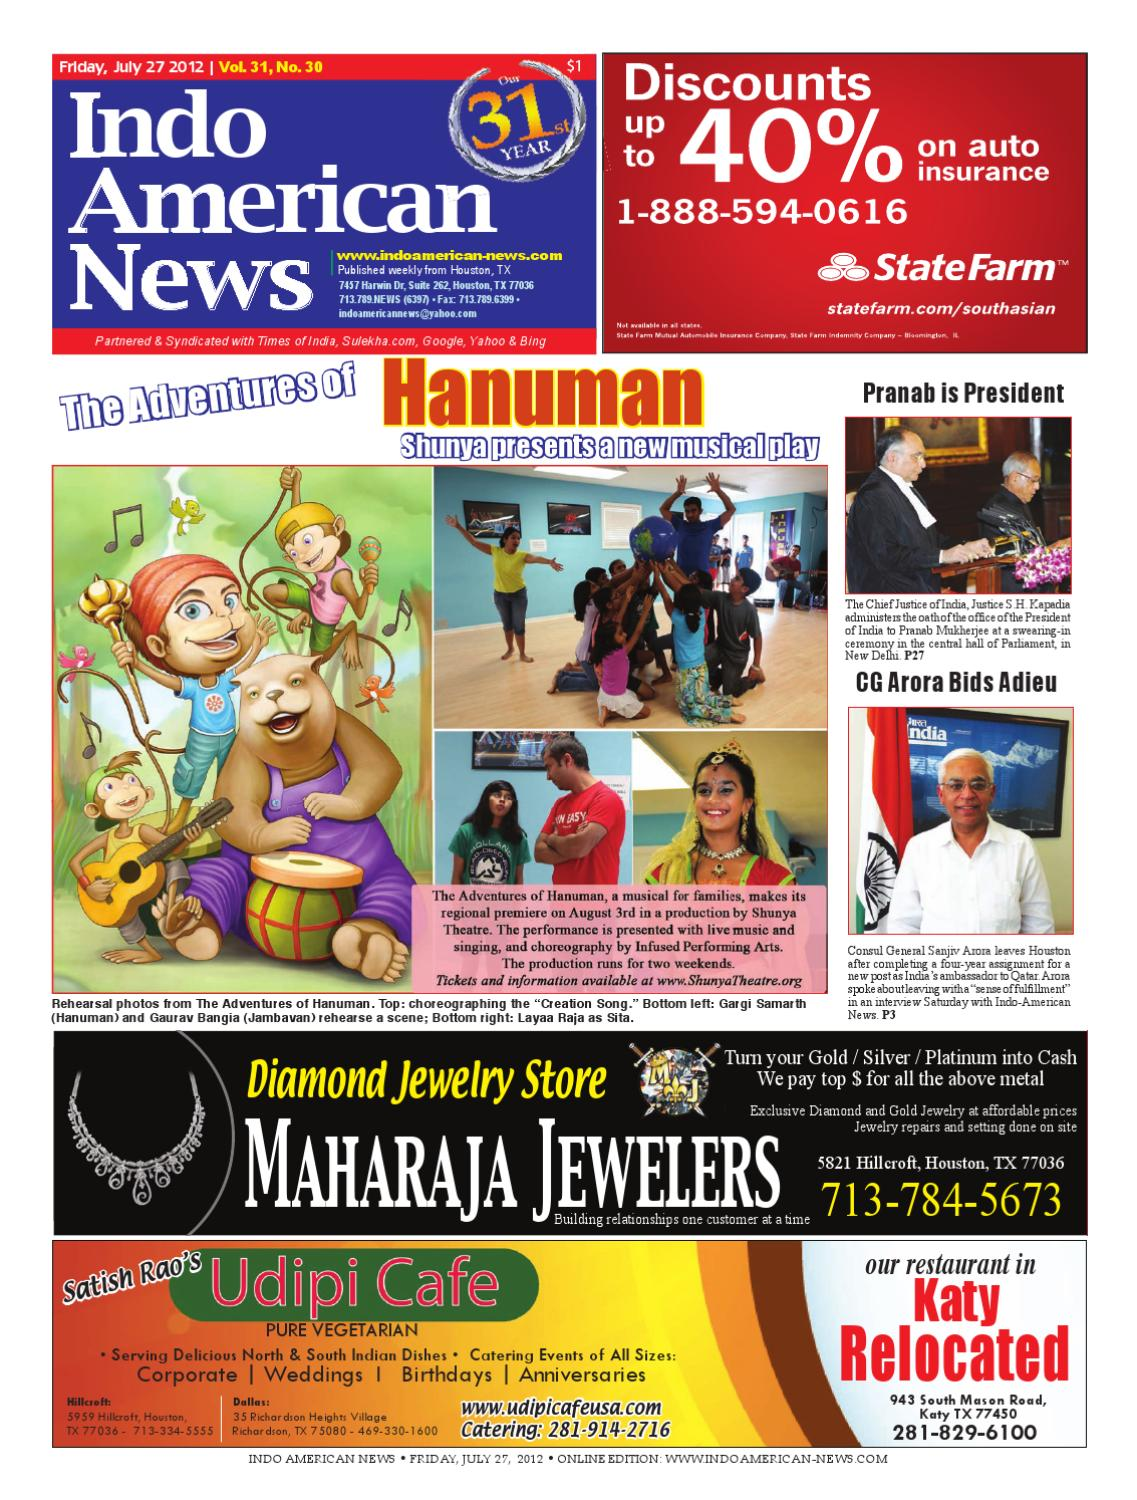 July 27, 2012 e- Newspaper by Indo American News - issuu